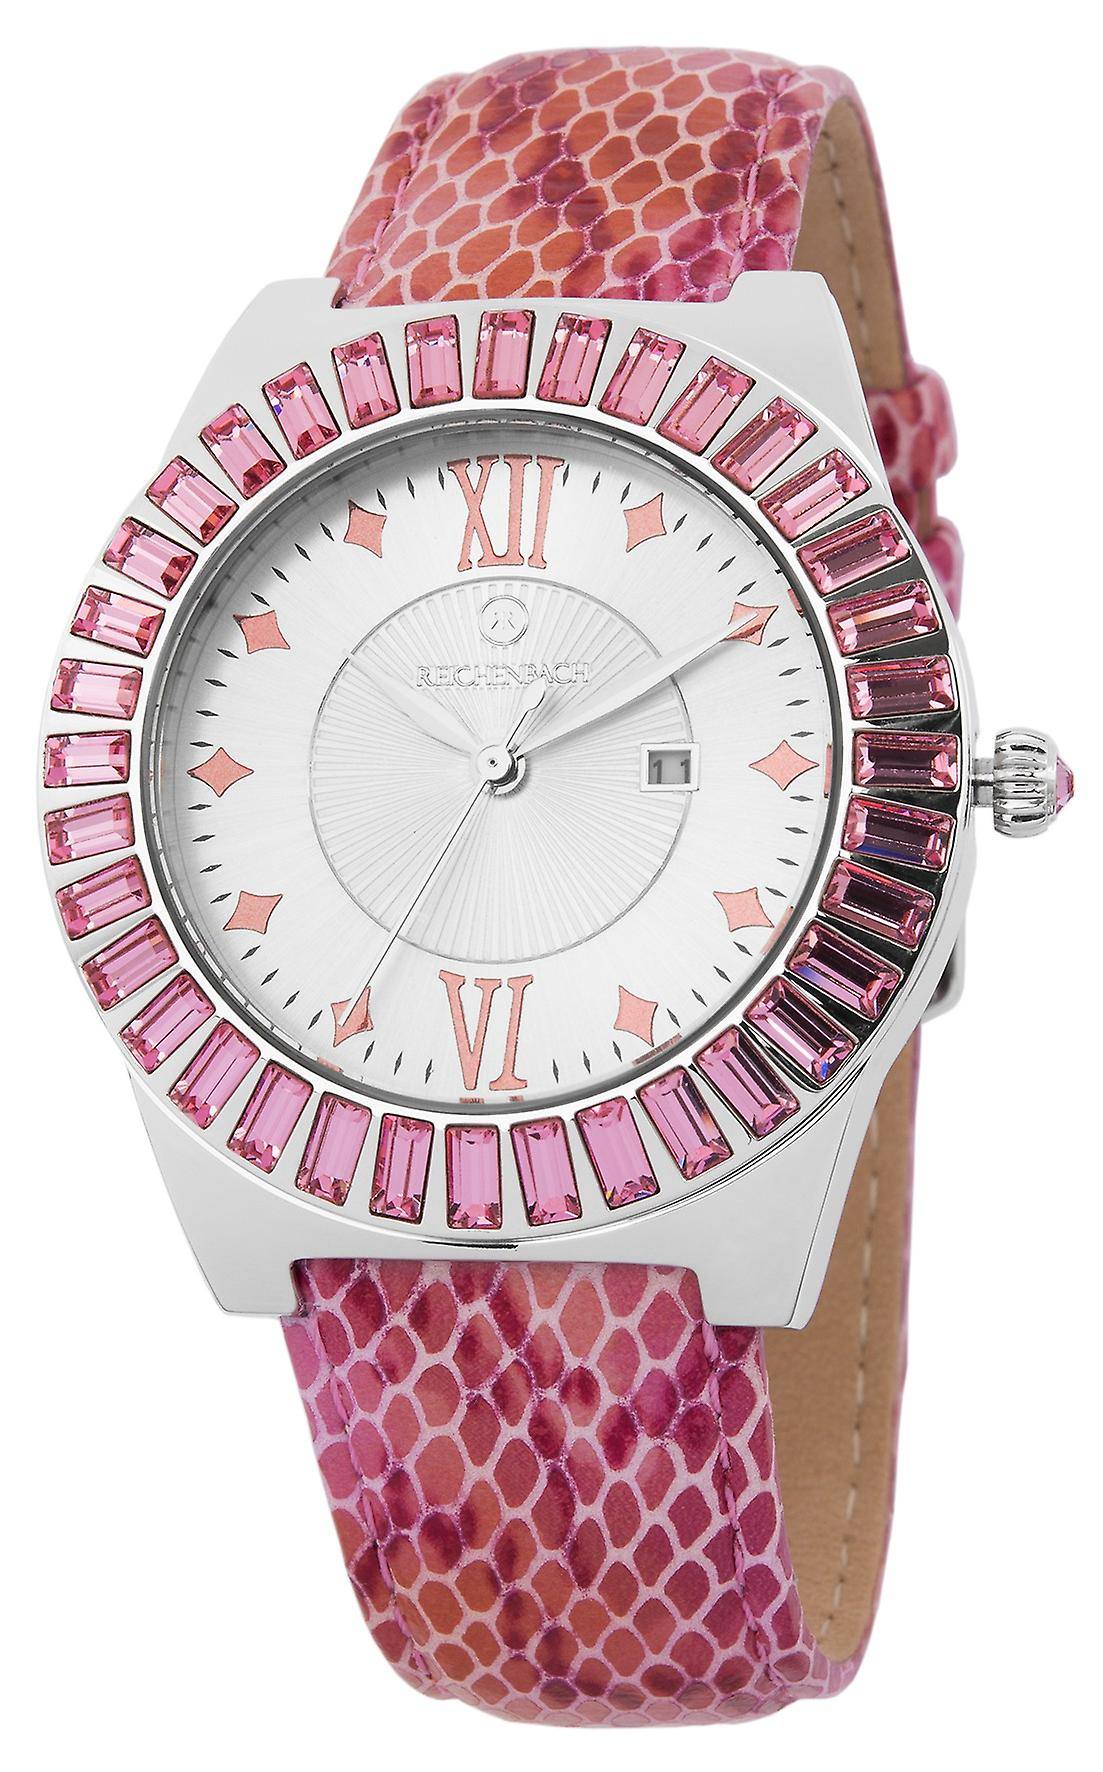 Reichenbach Ladies quarz watch Fedders, RB503-118